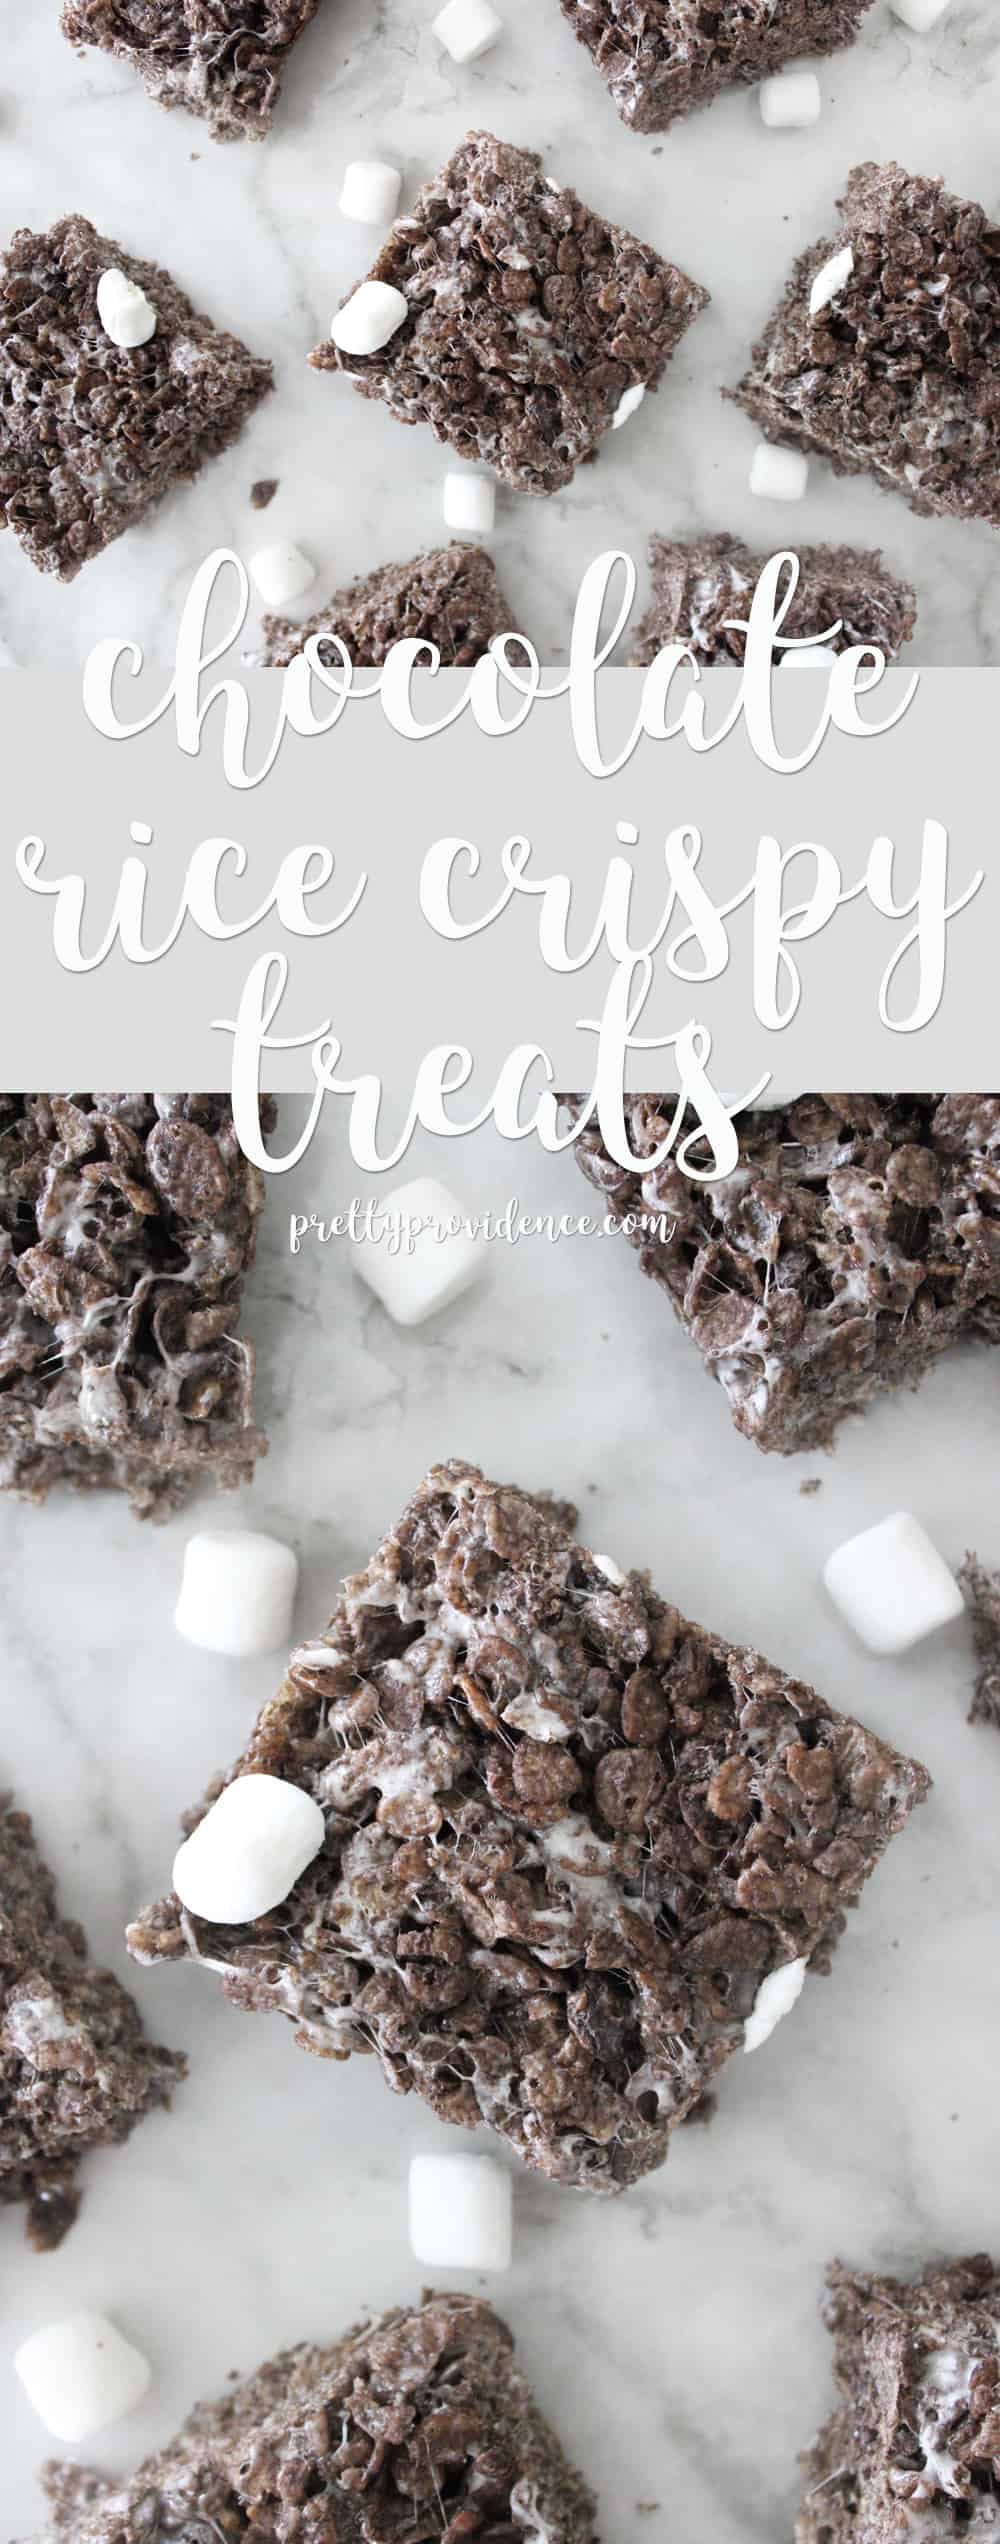 Super easy and delicious chocolate rice crispy treats! Perfect summer treat for when you don't want to turn on those ovens!